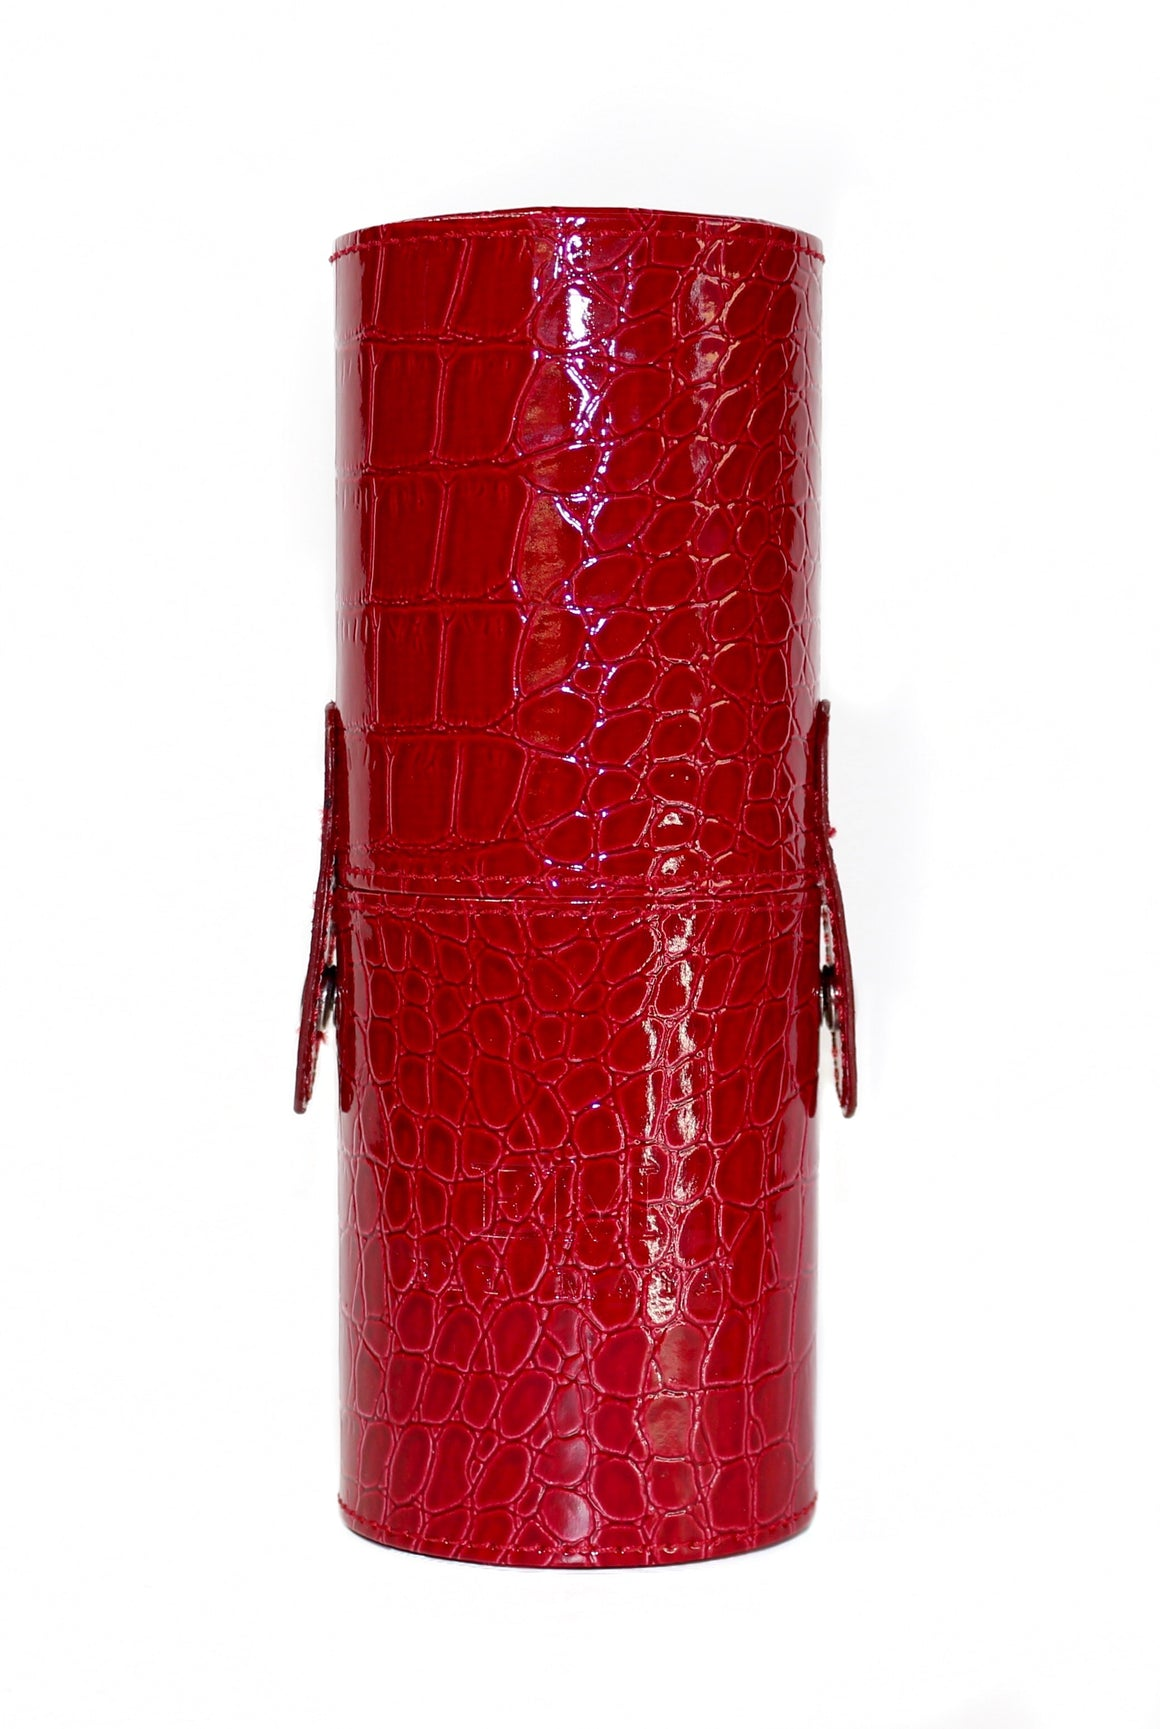 Red Snake Skin Brush Case MEDIUM.